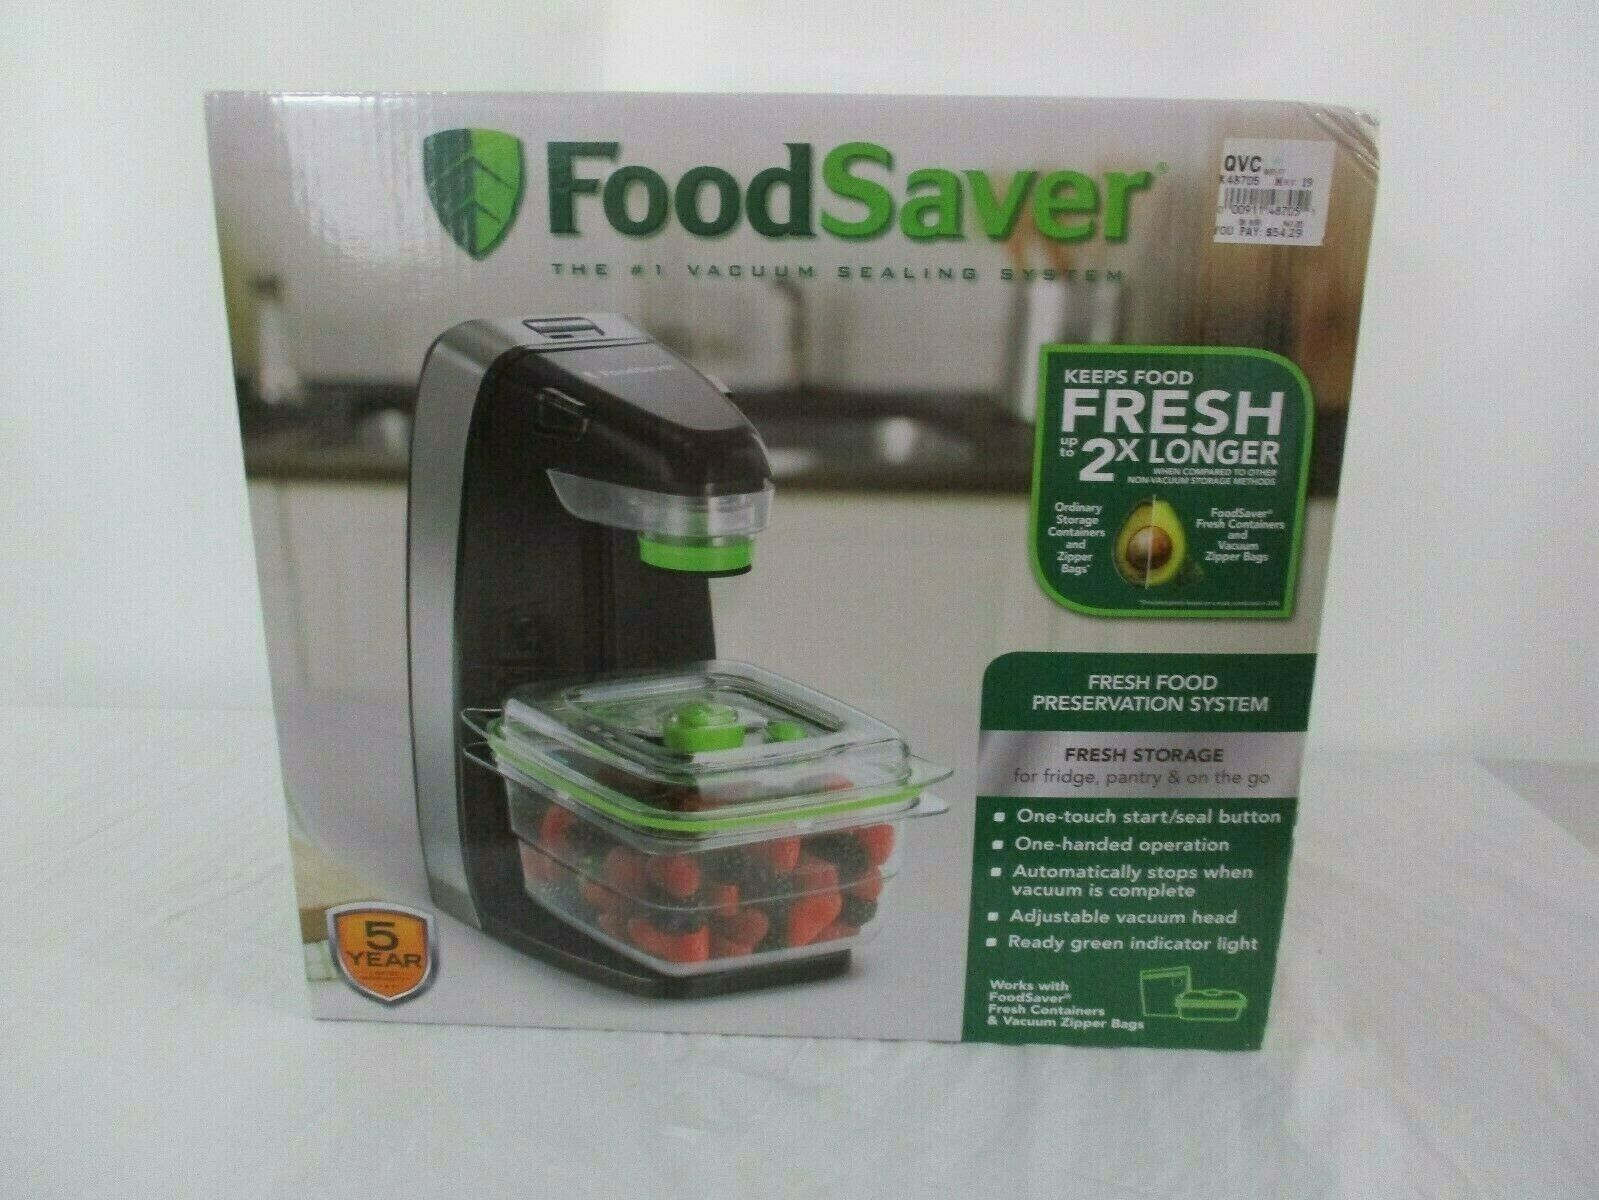 Food Saver #1 Vacuum Sealing System New In Box FM1230-000